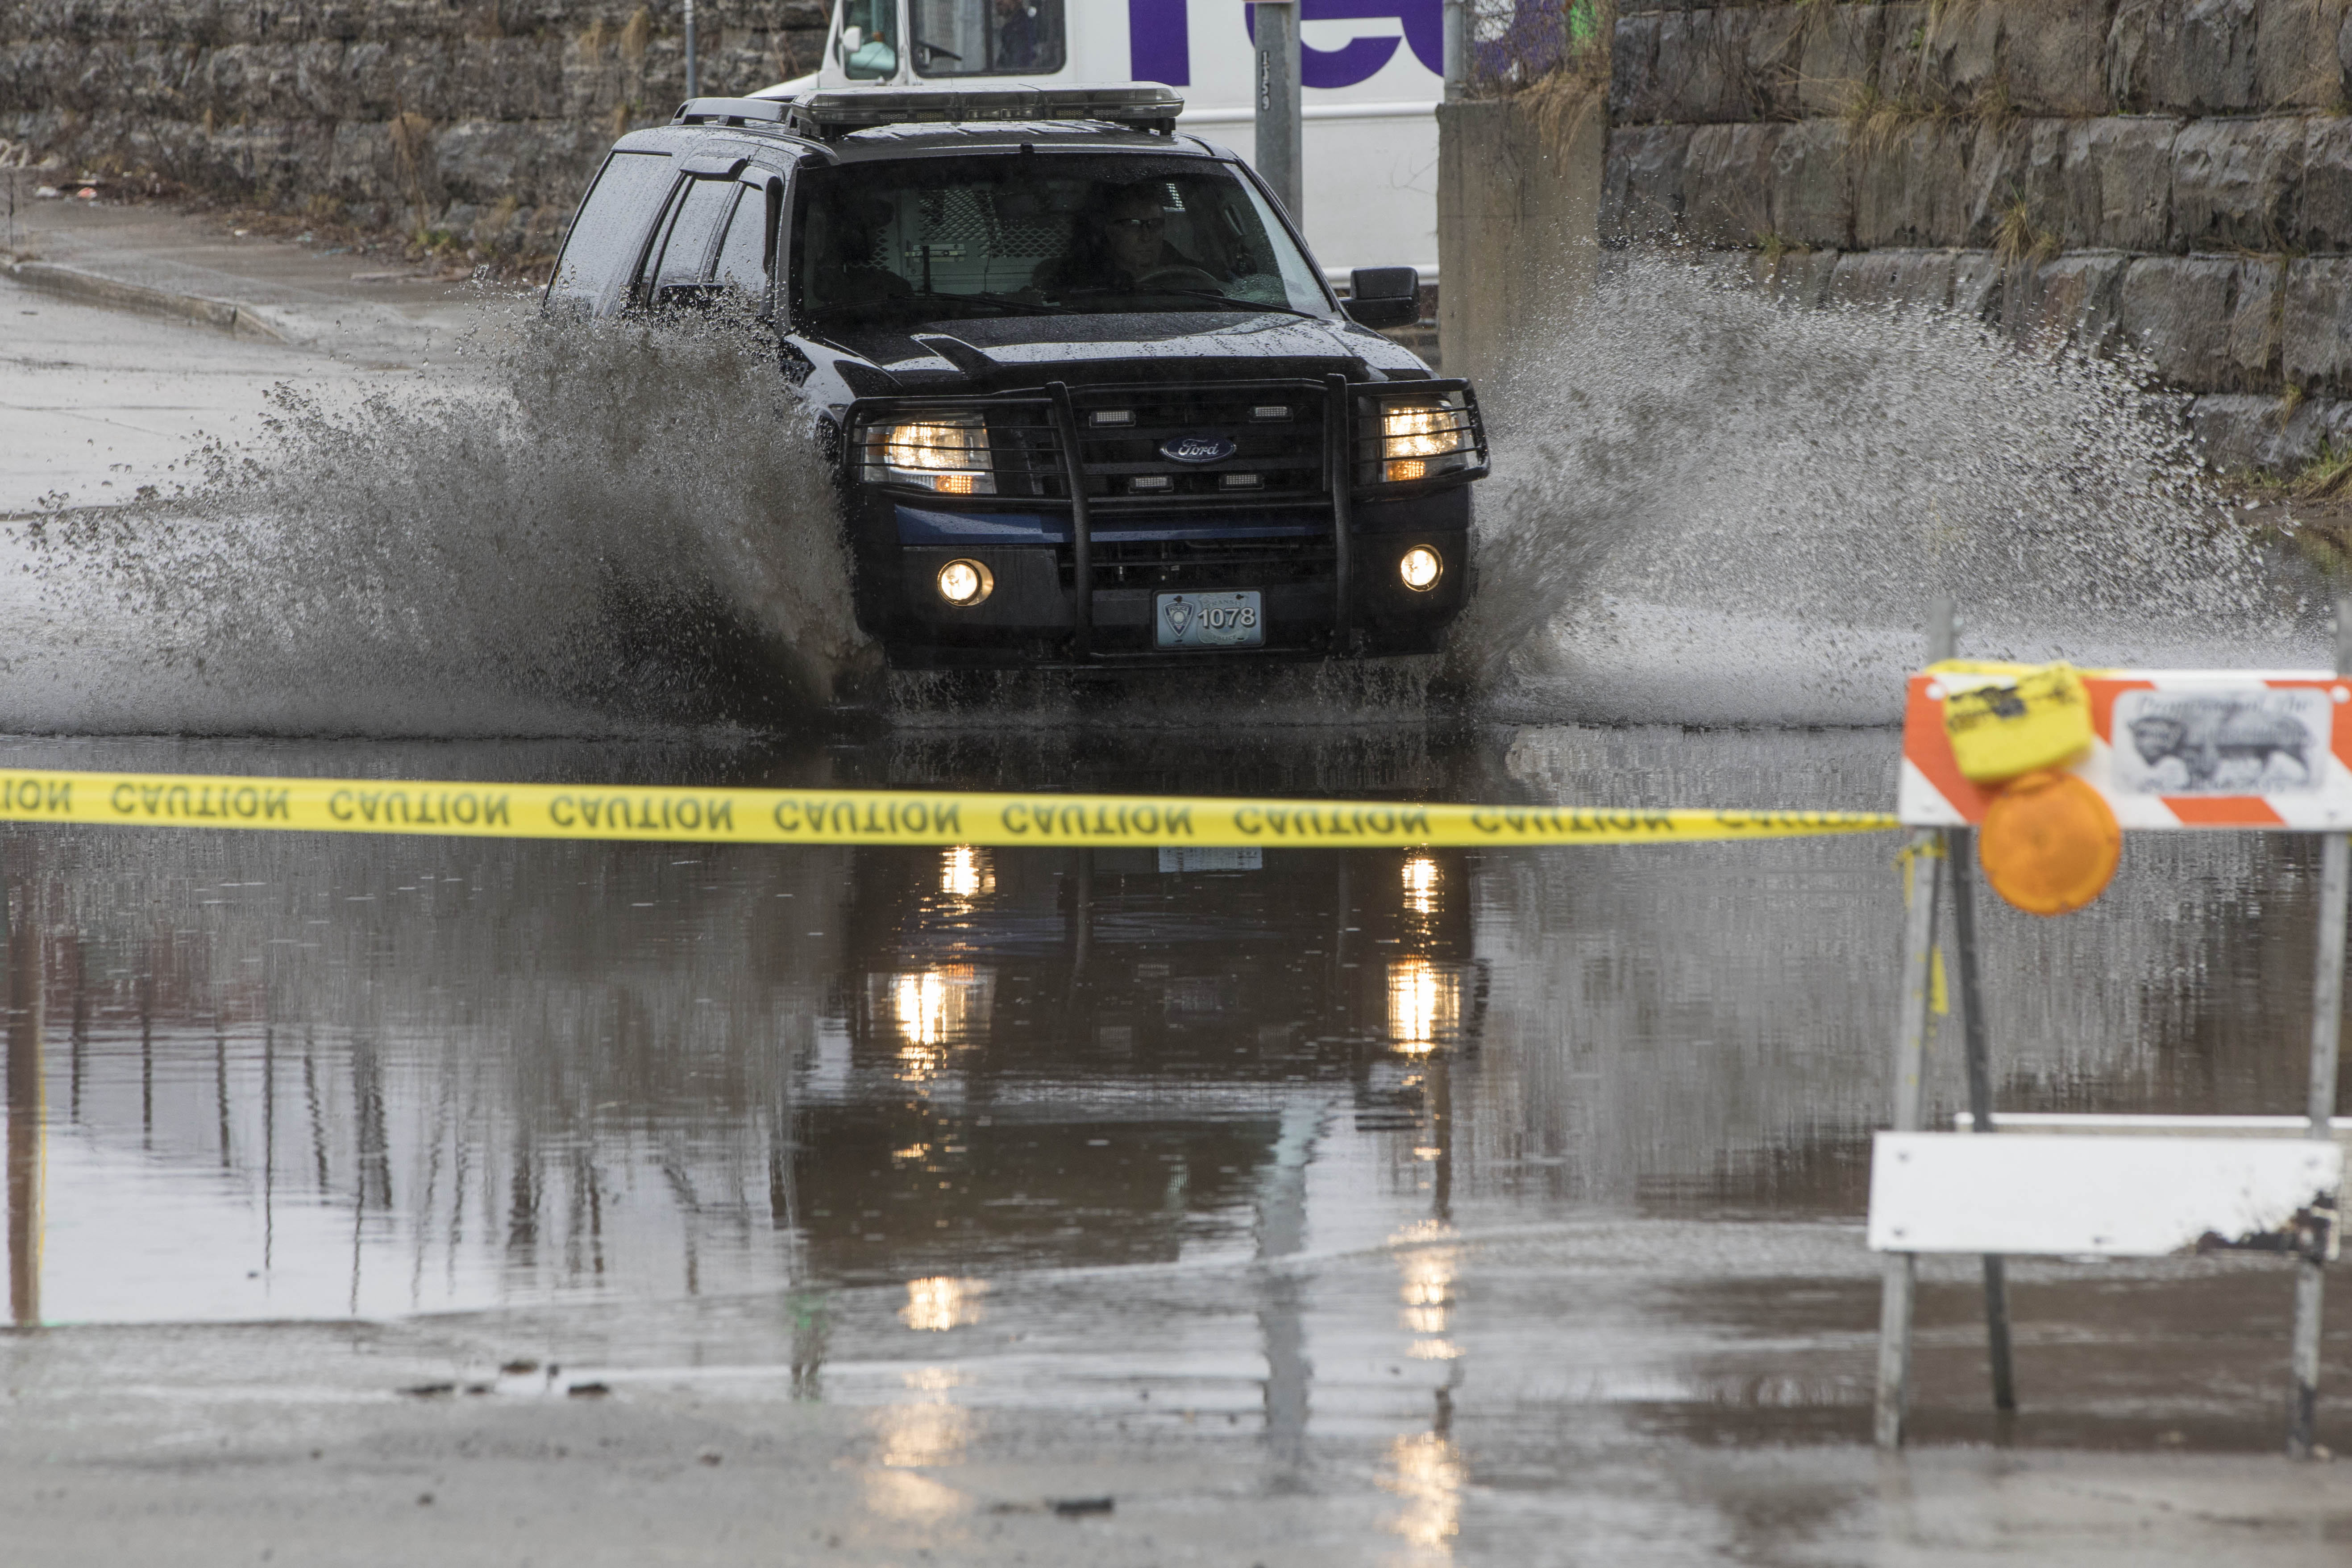 Flood warnings have been issued for parts of Western New York. (Derek Gee/Buffalo News)